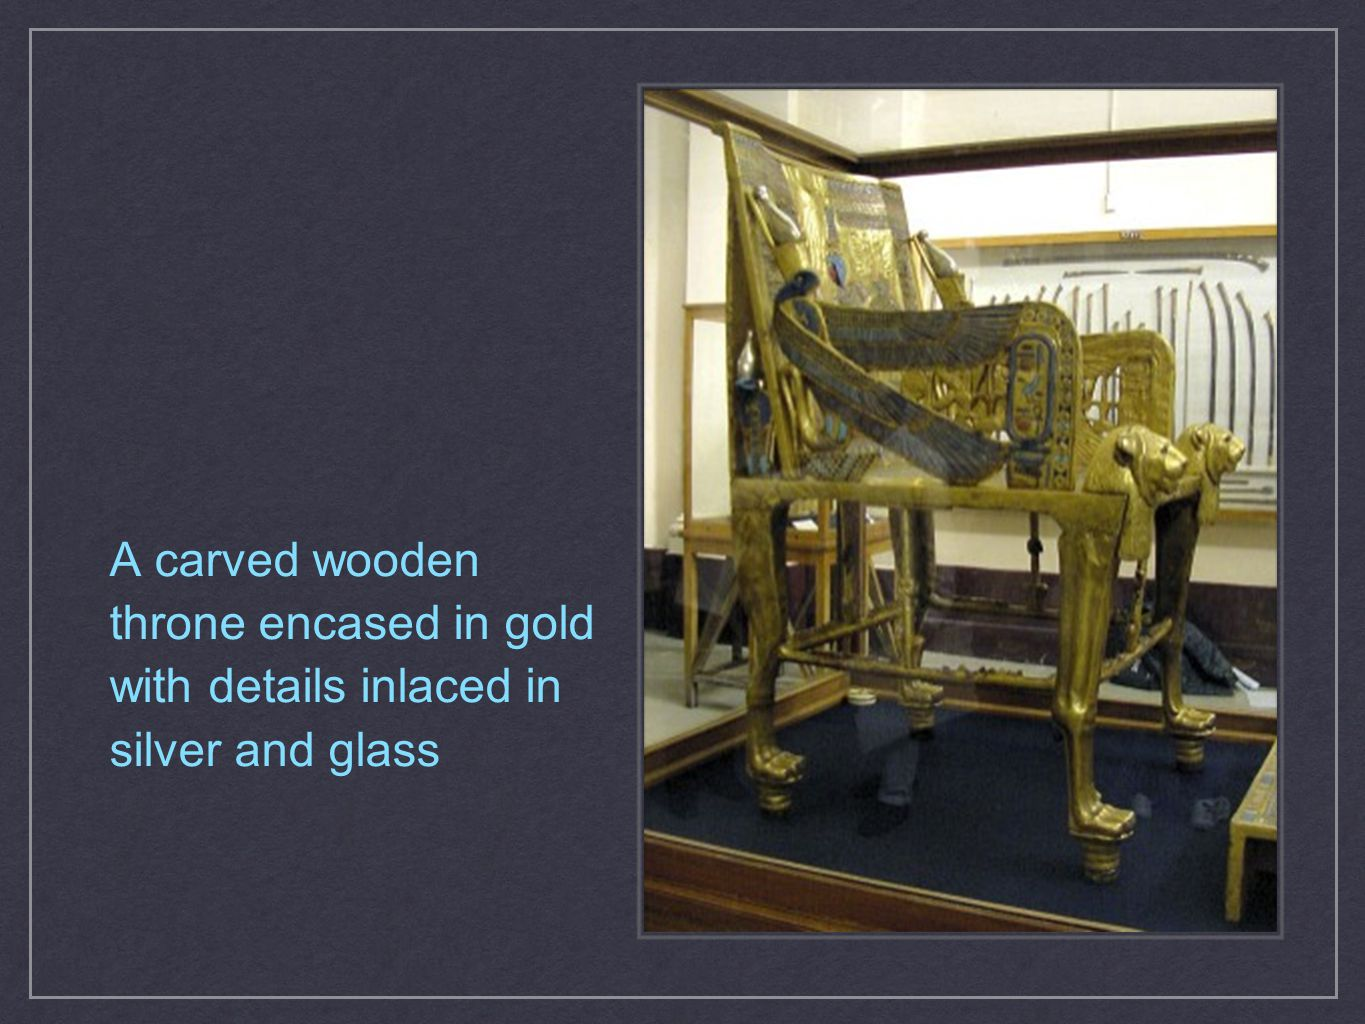 A carved wooden throne encased in gold with details inlaced in silver and glass